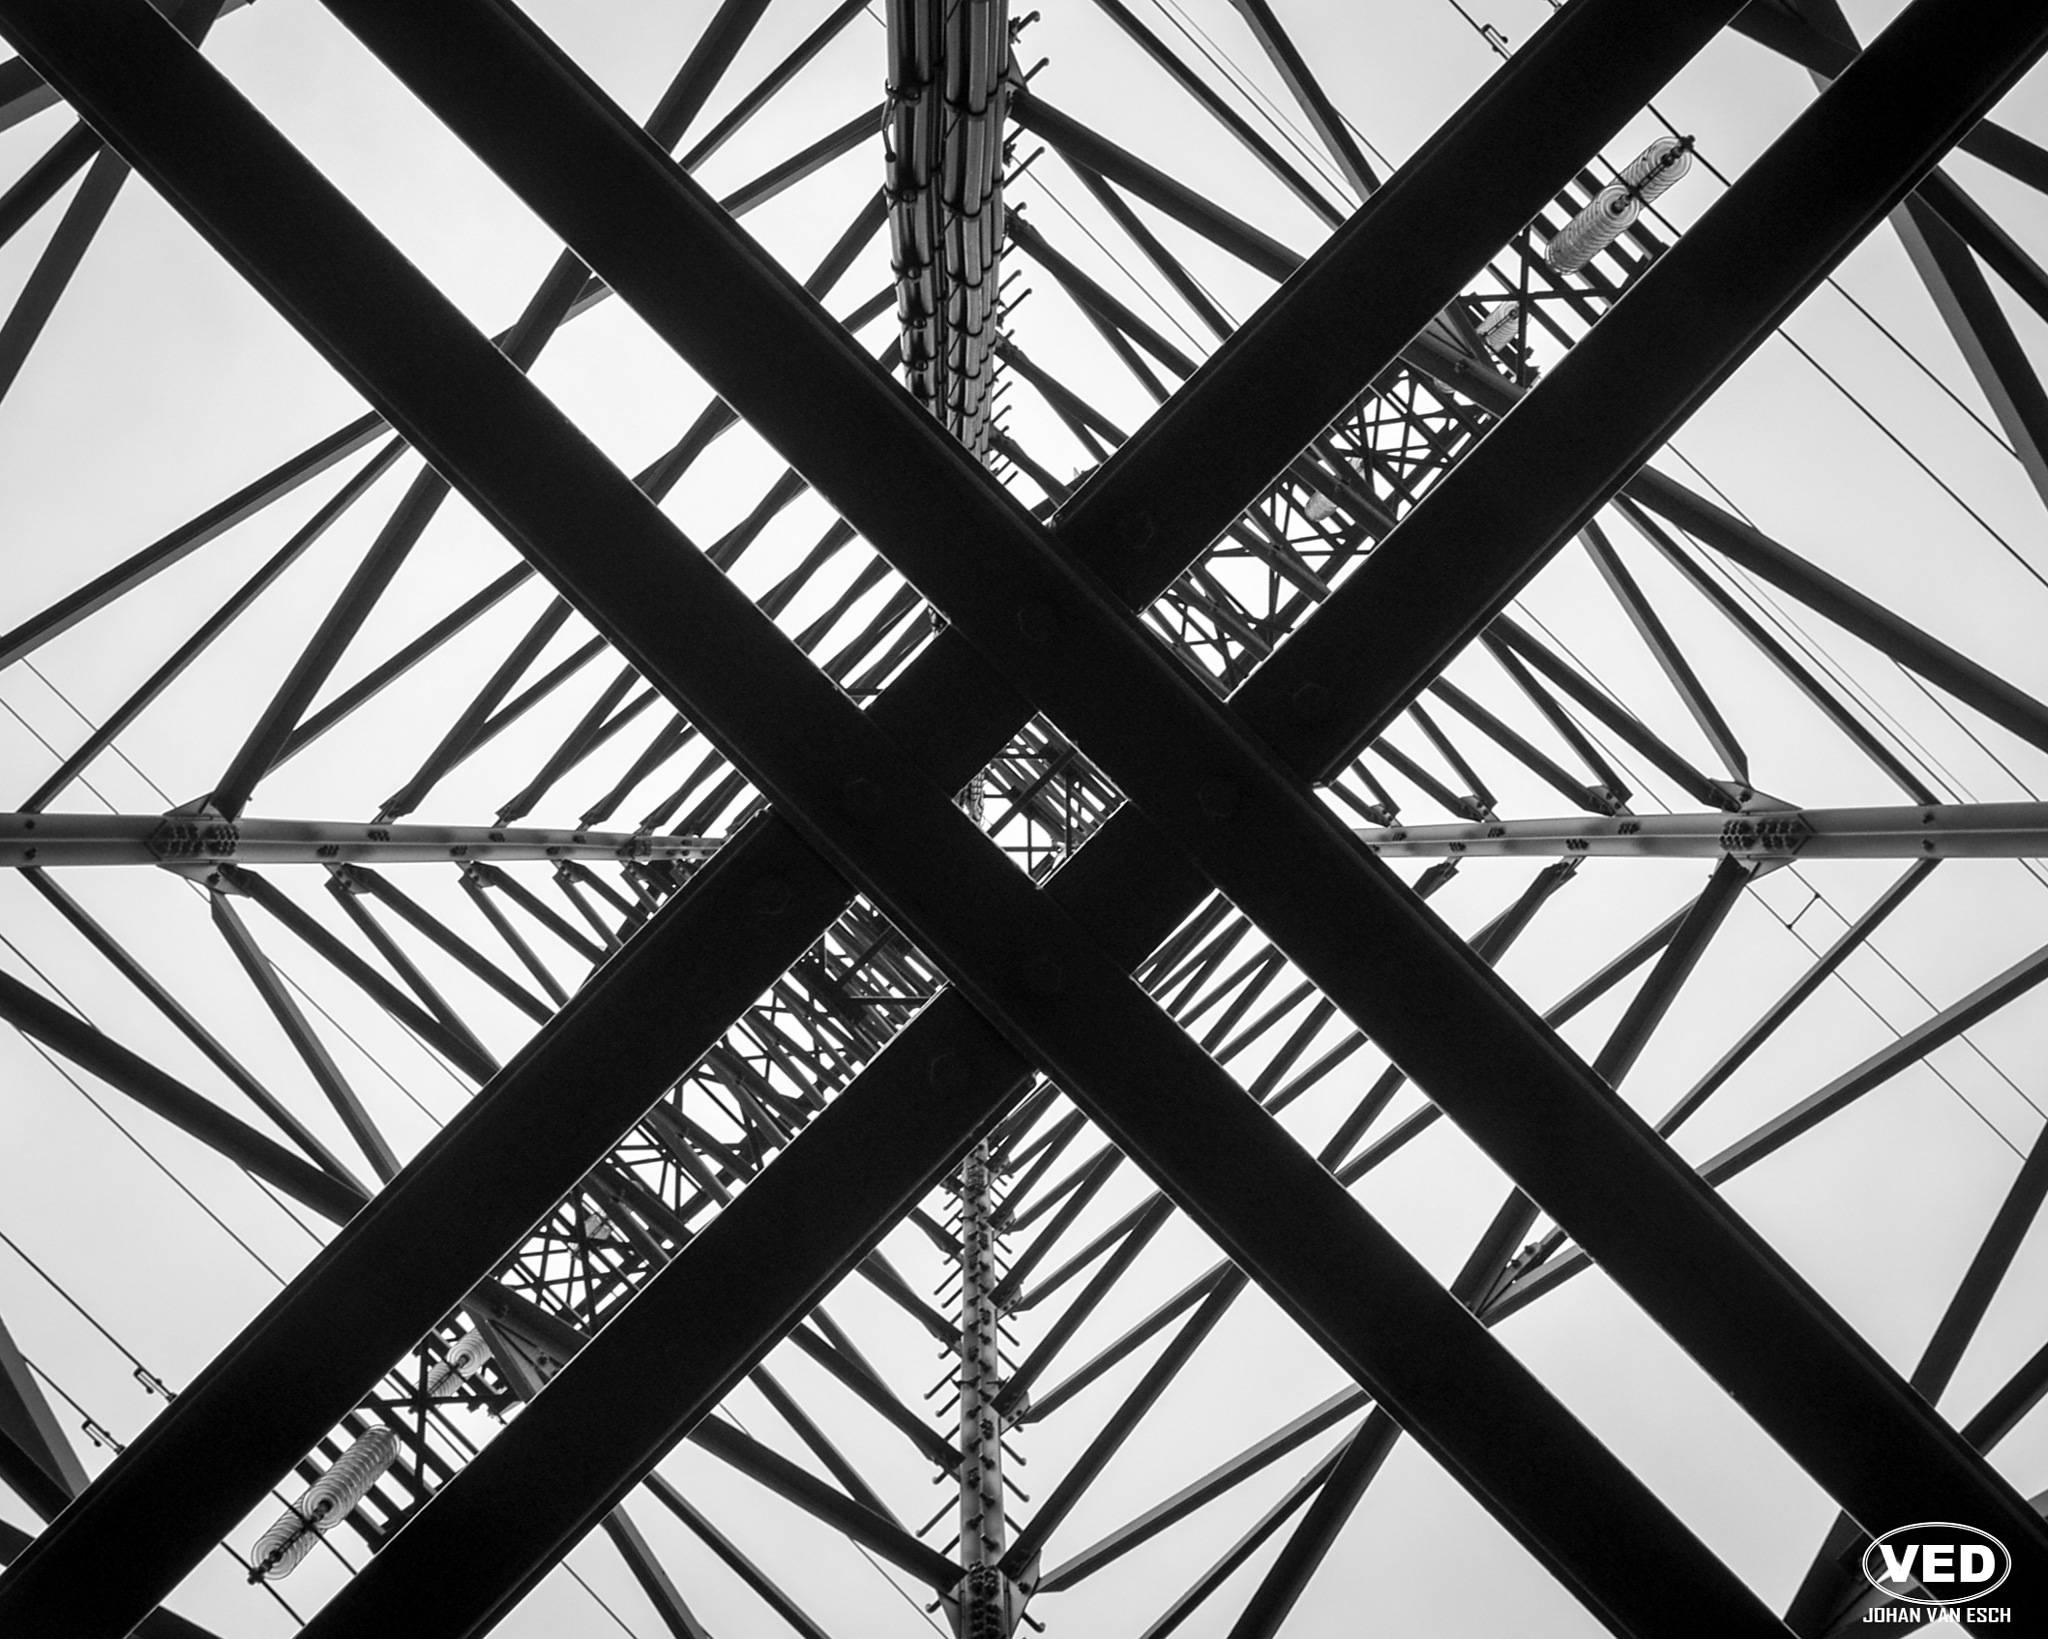 Under the Transmission Tower by Johan van Esch (VED)